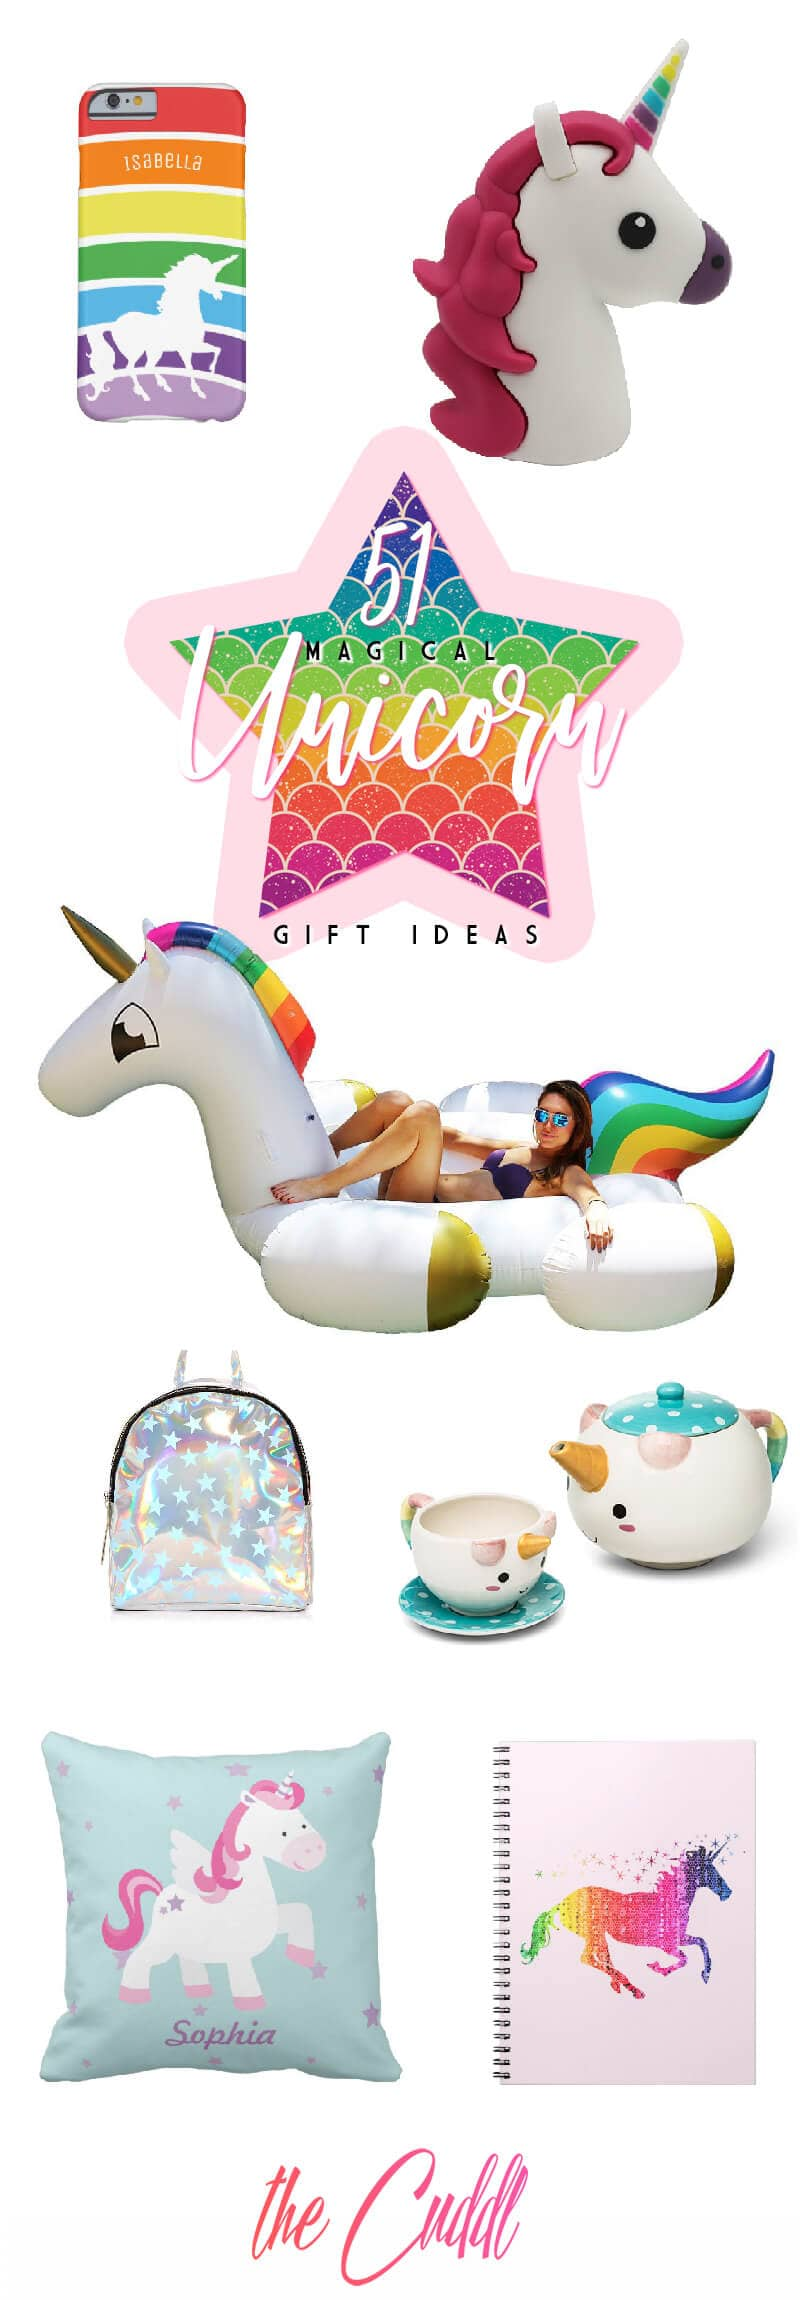 51 Enchanted Unicorn Giftsto Add Colour and Magic to the Life of Your Loved Ones